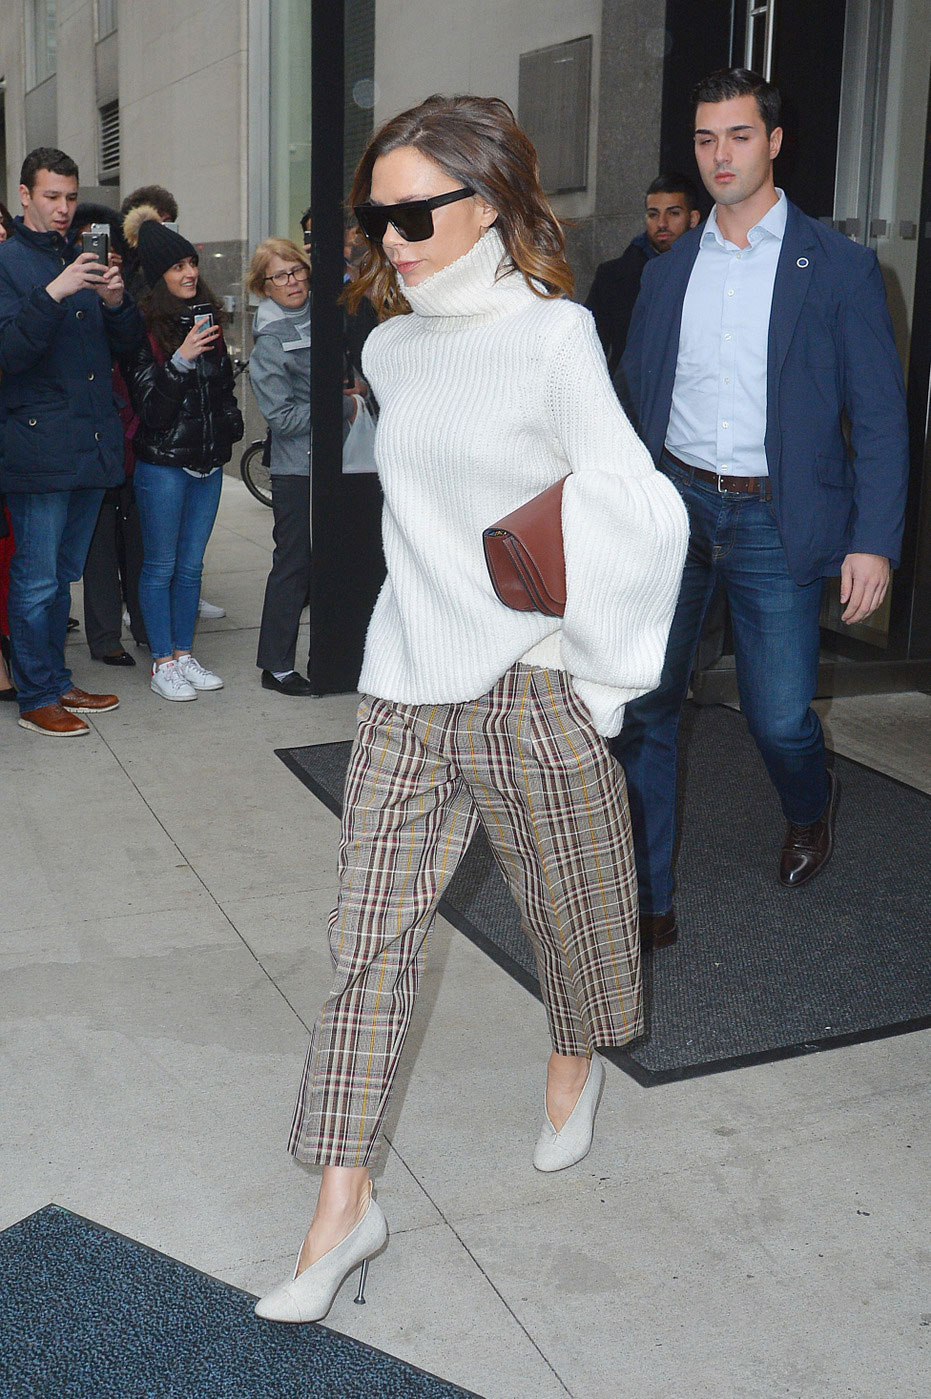 Victoria Beckham steps out in a turtleneck sweater and check pants.